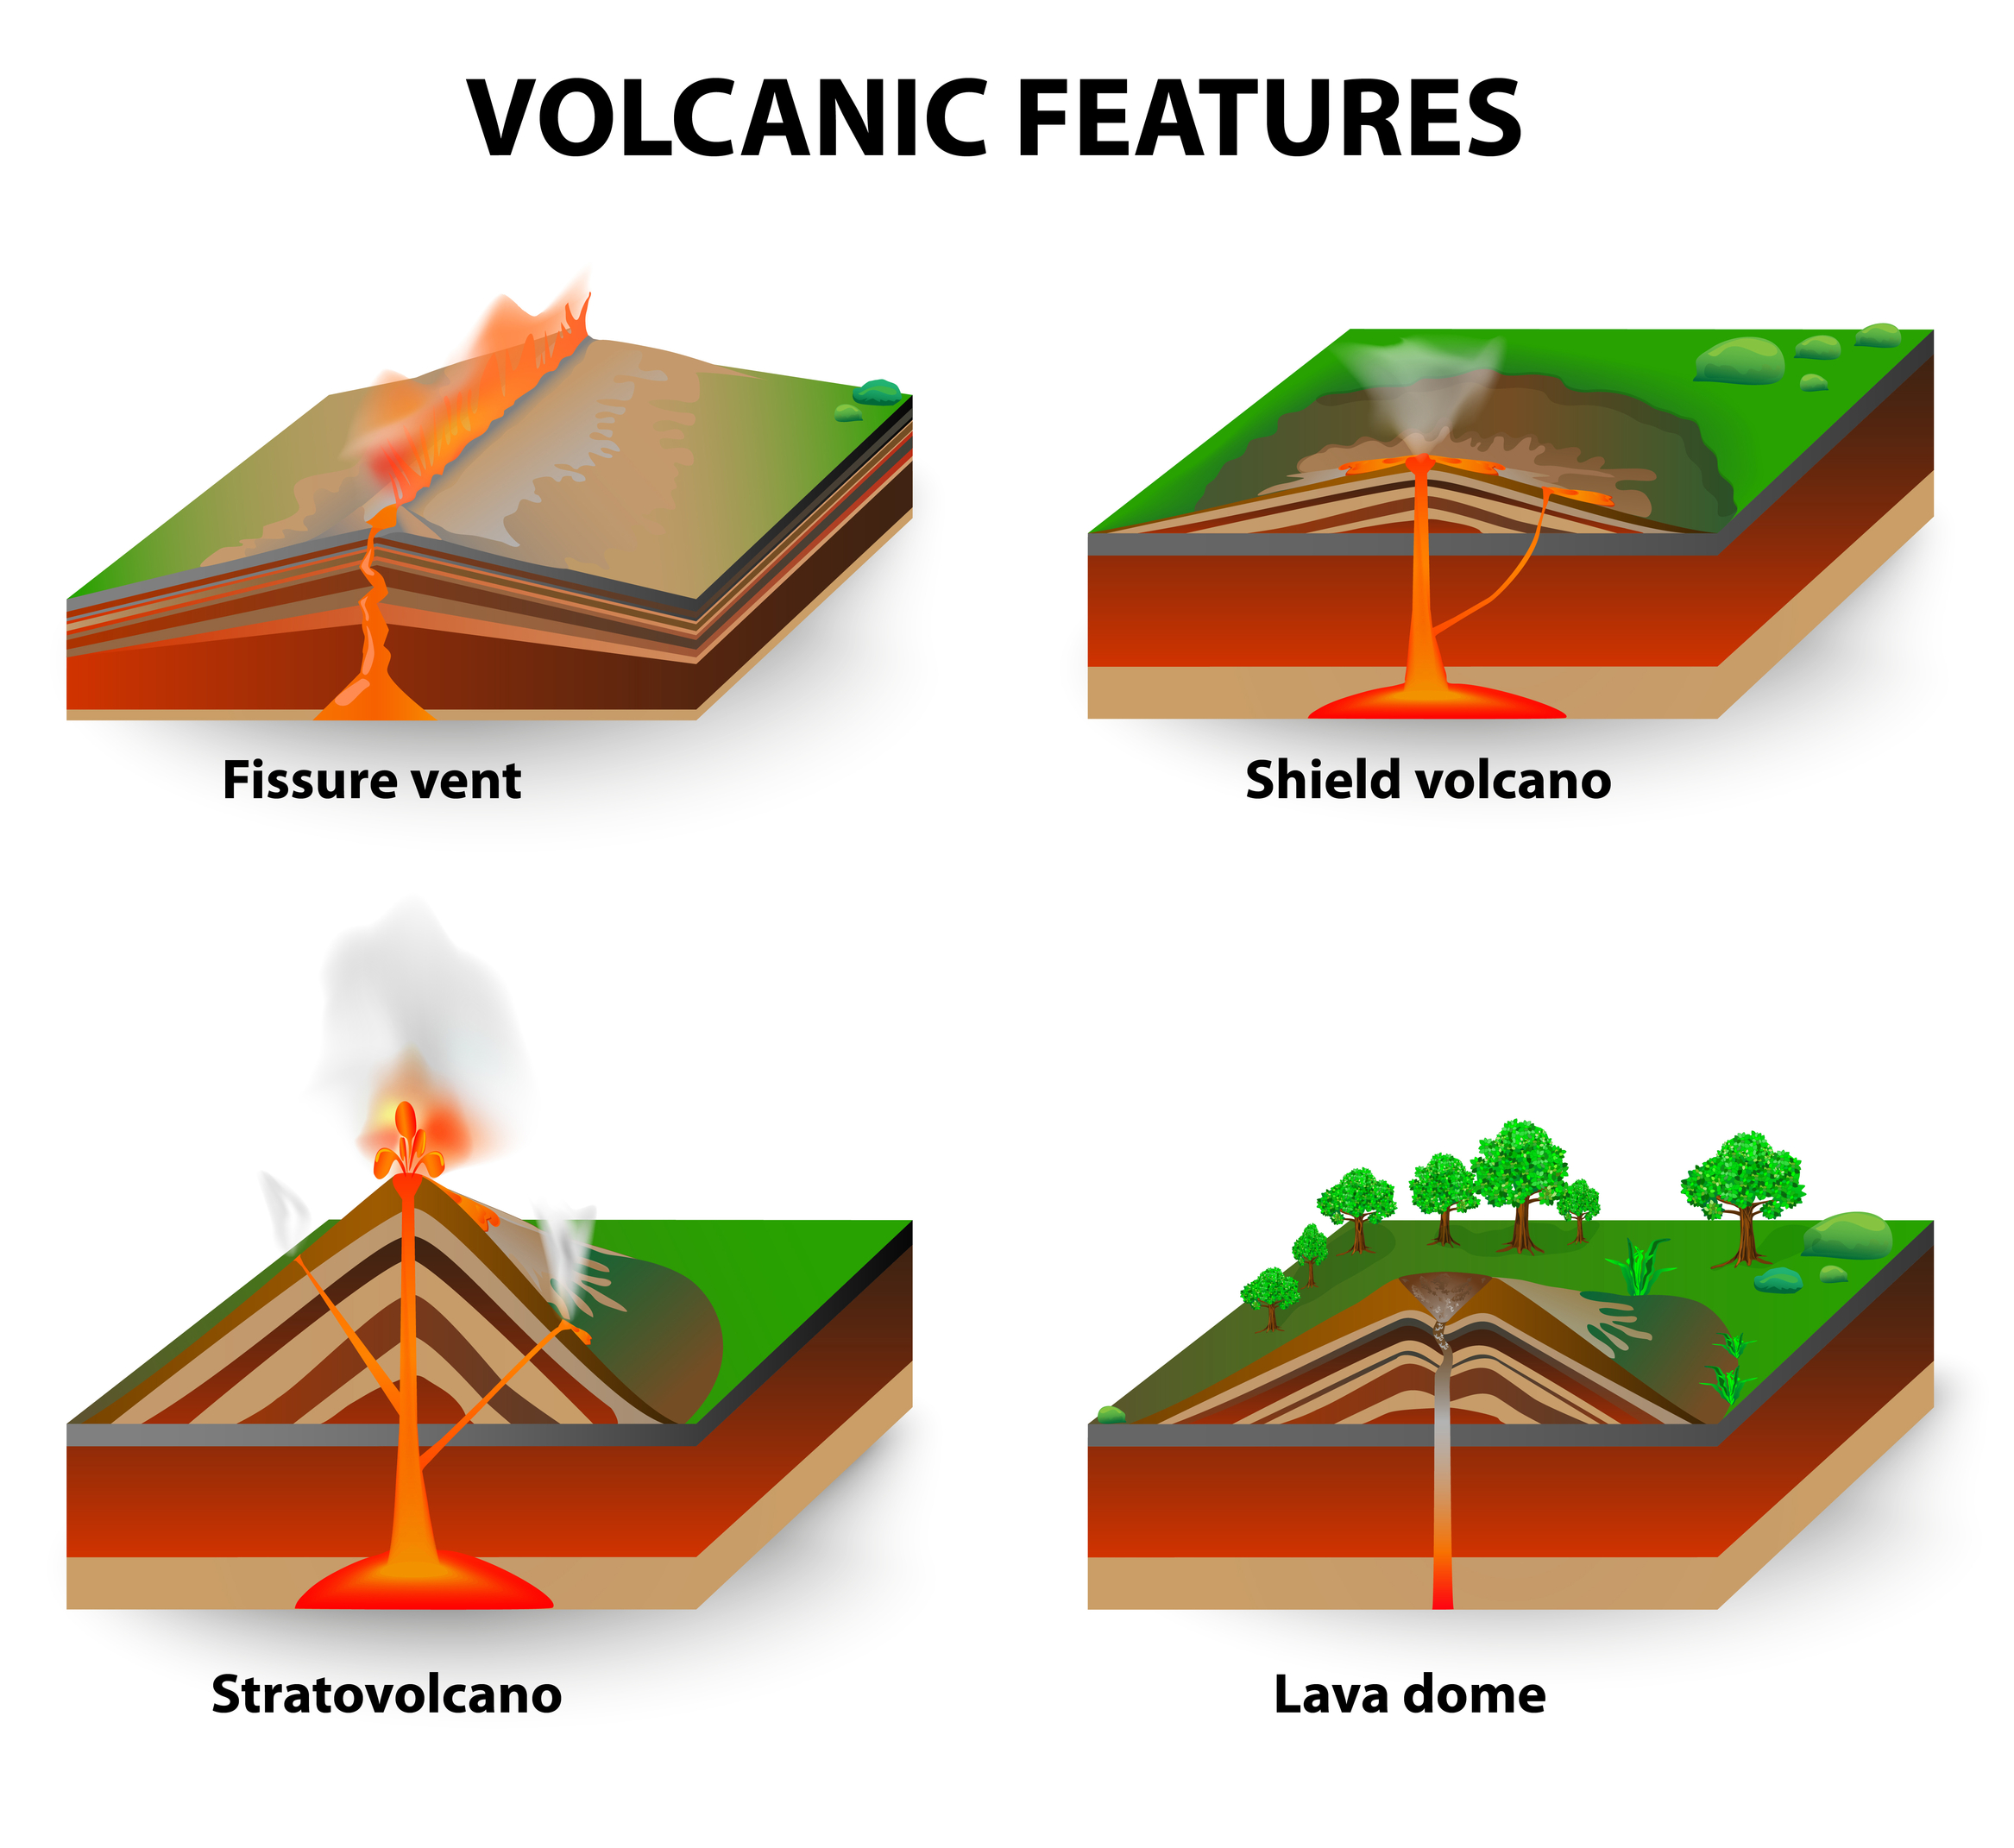 different types of volcanoes When magma erupts at the surface it can form different types of volcanoes depending on the viscosity, or stickiness, of the magma, the amount of gas in the magma, and the way in which the magma reached the surface different types of volcanoes include stratovolcanoes, shield, fissure vents, spatter cones and calderas.